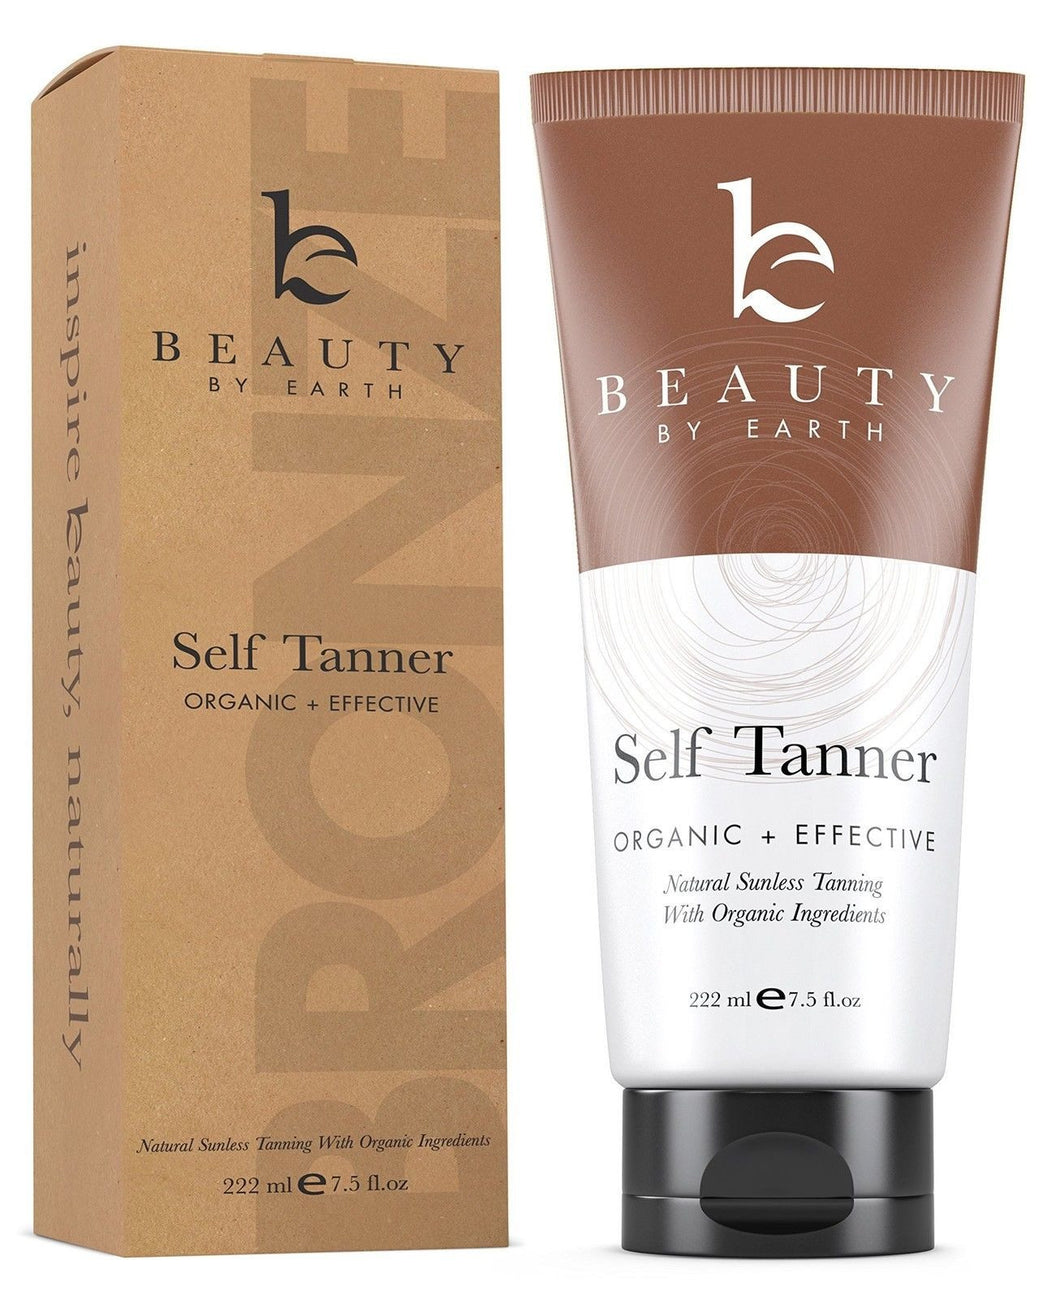 Beauty - Organic Self Tanner From Beauty By Earth